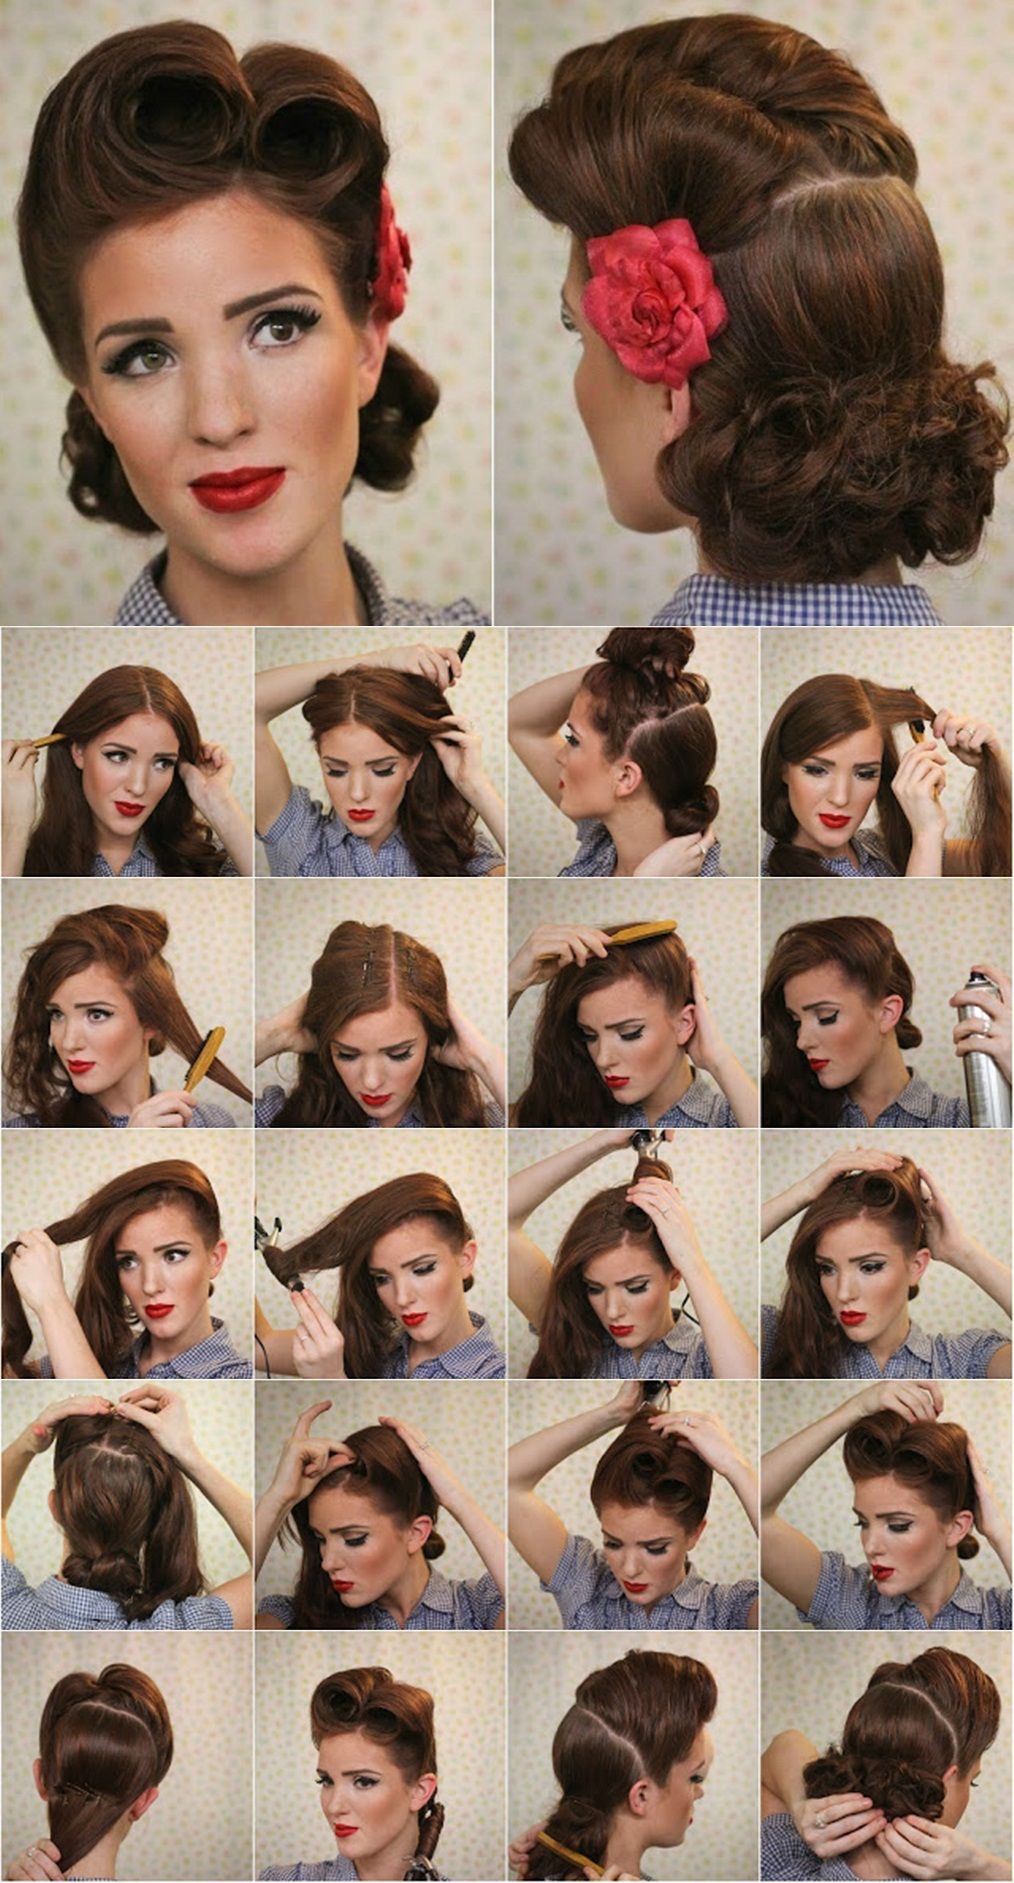 Cats2 Jpg 1014 1883 Retro Hairstyles Hair Styles Vintage Hairstyles